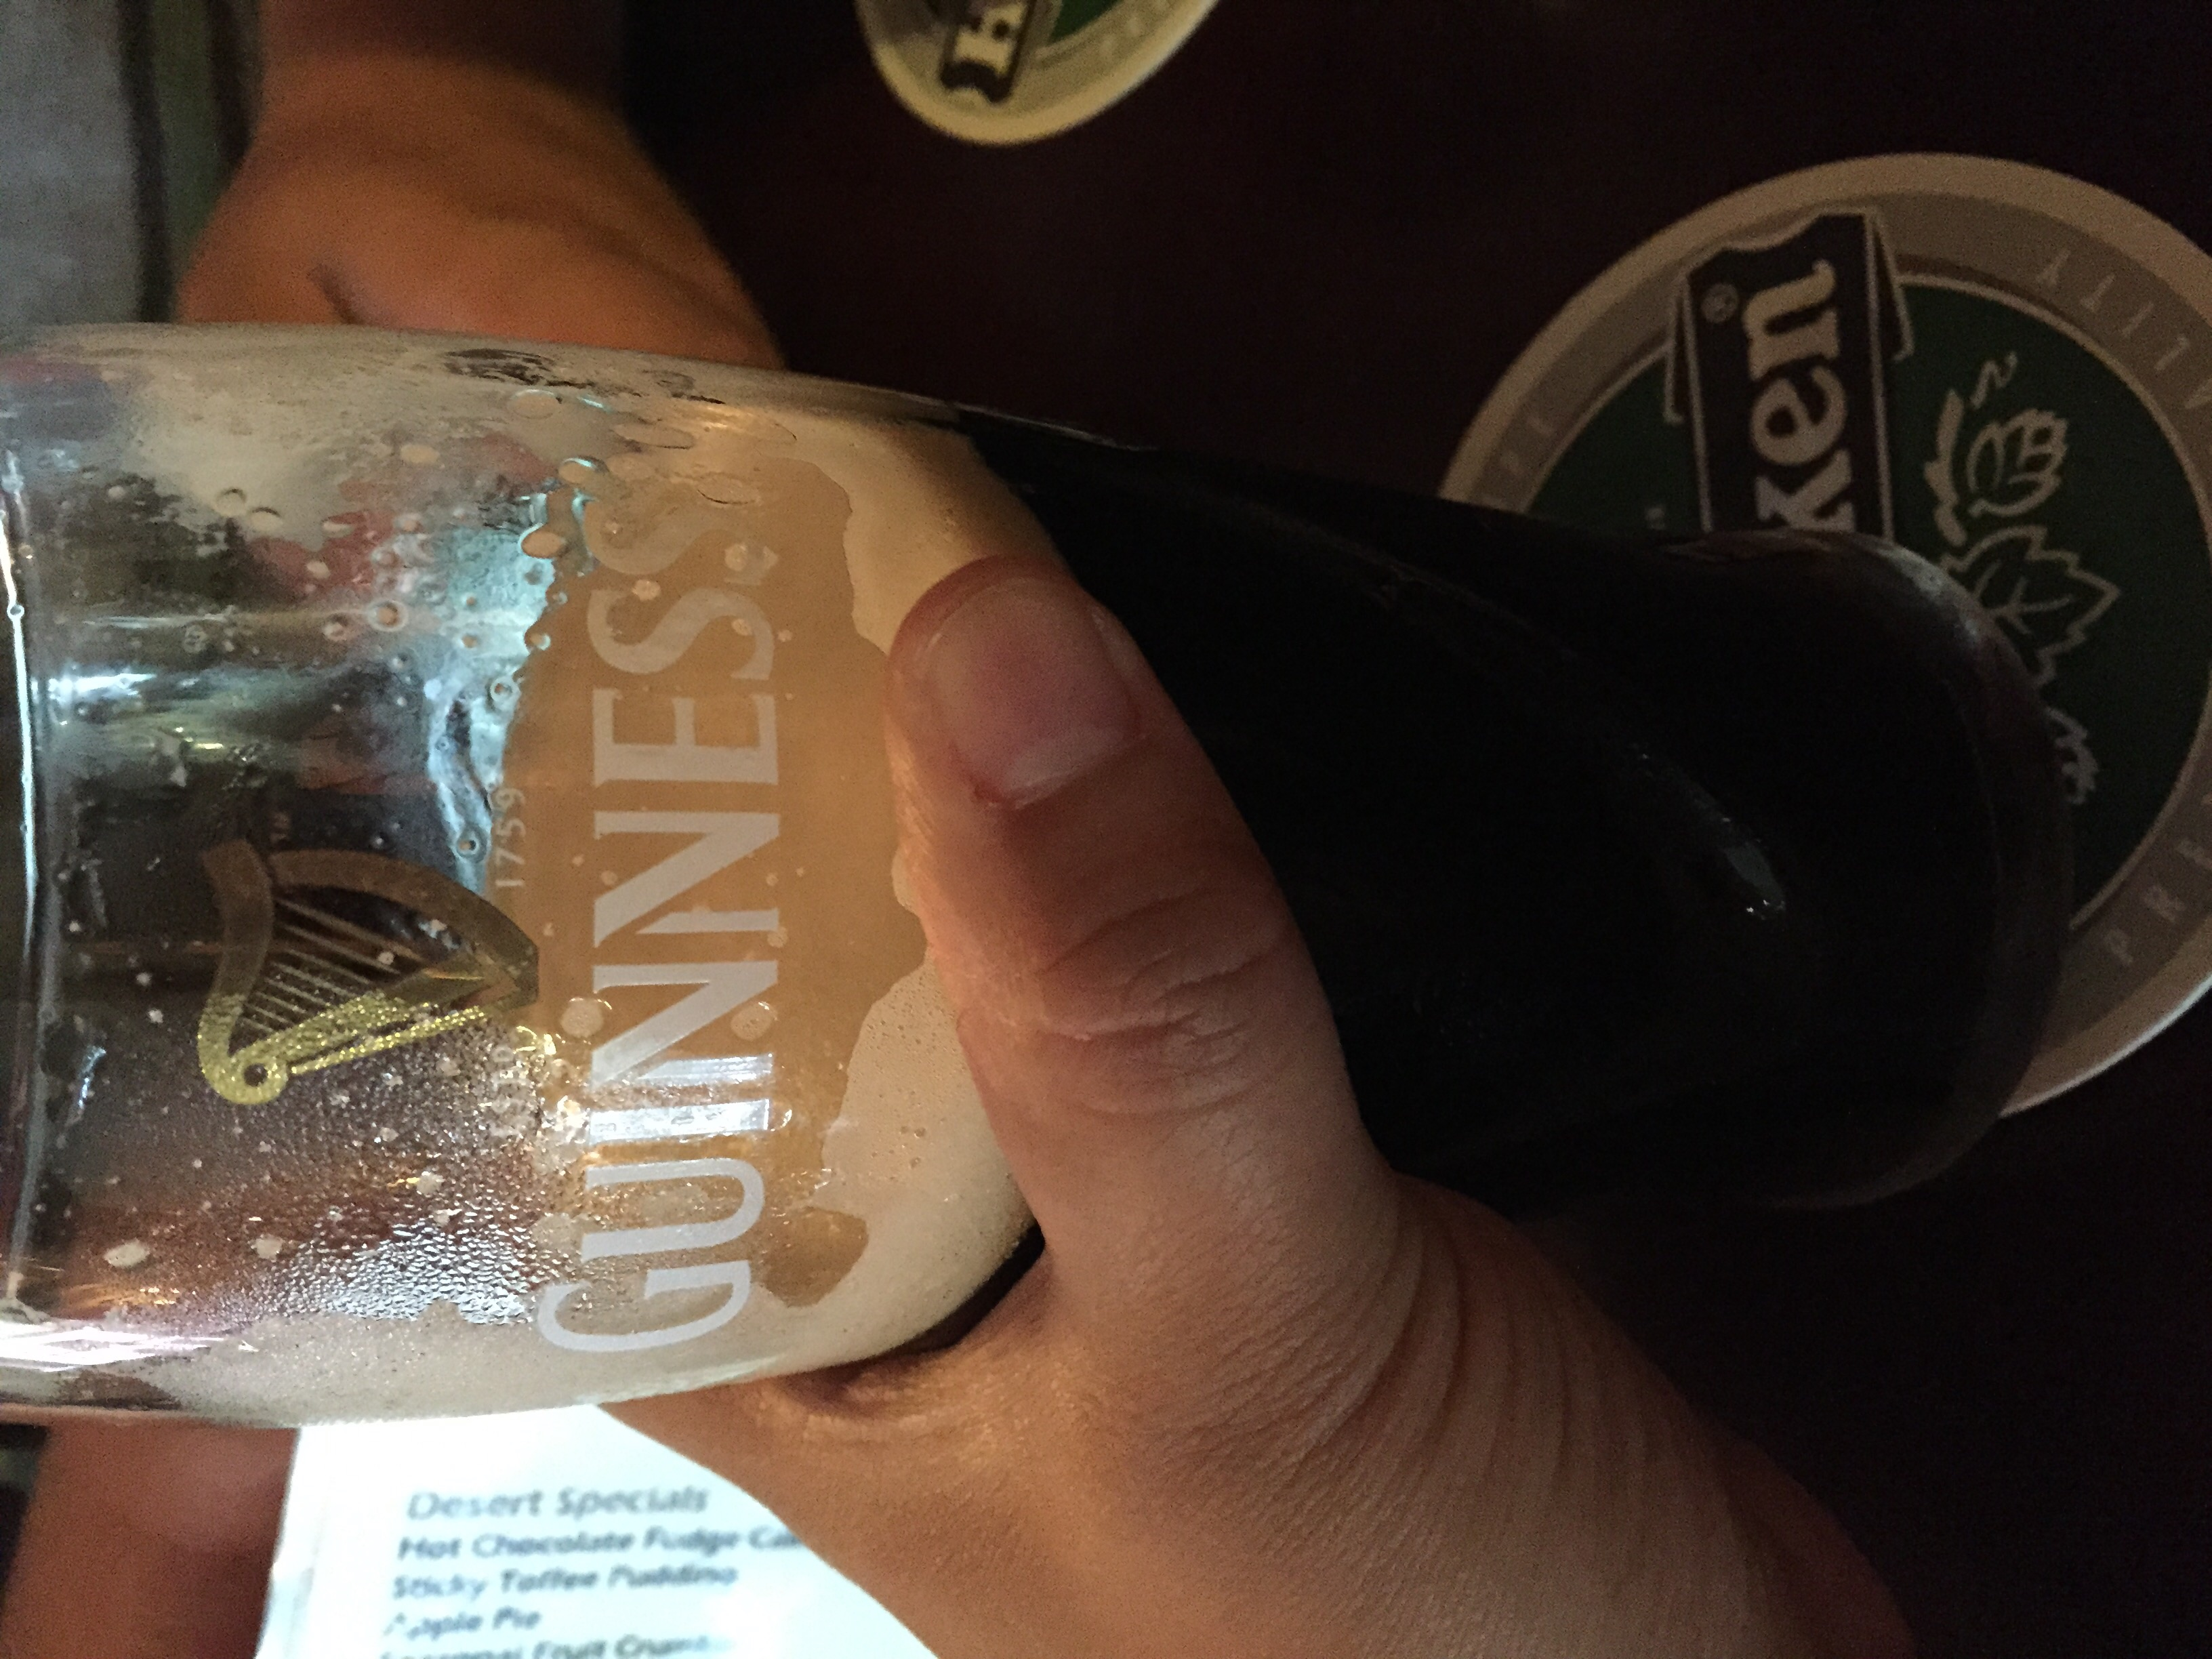 Our last Guinness in Ireland...SAD.